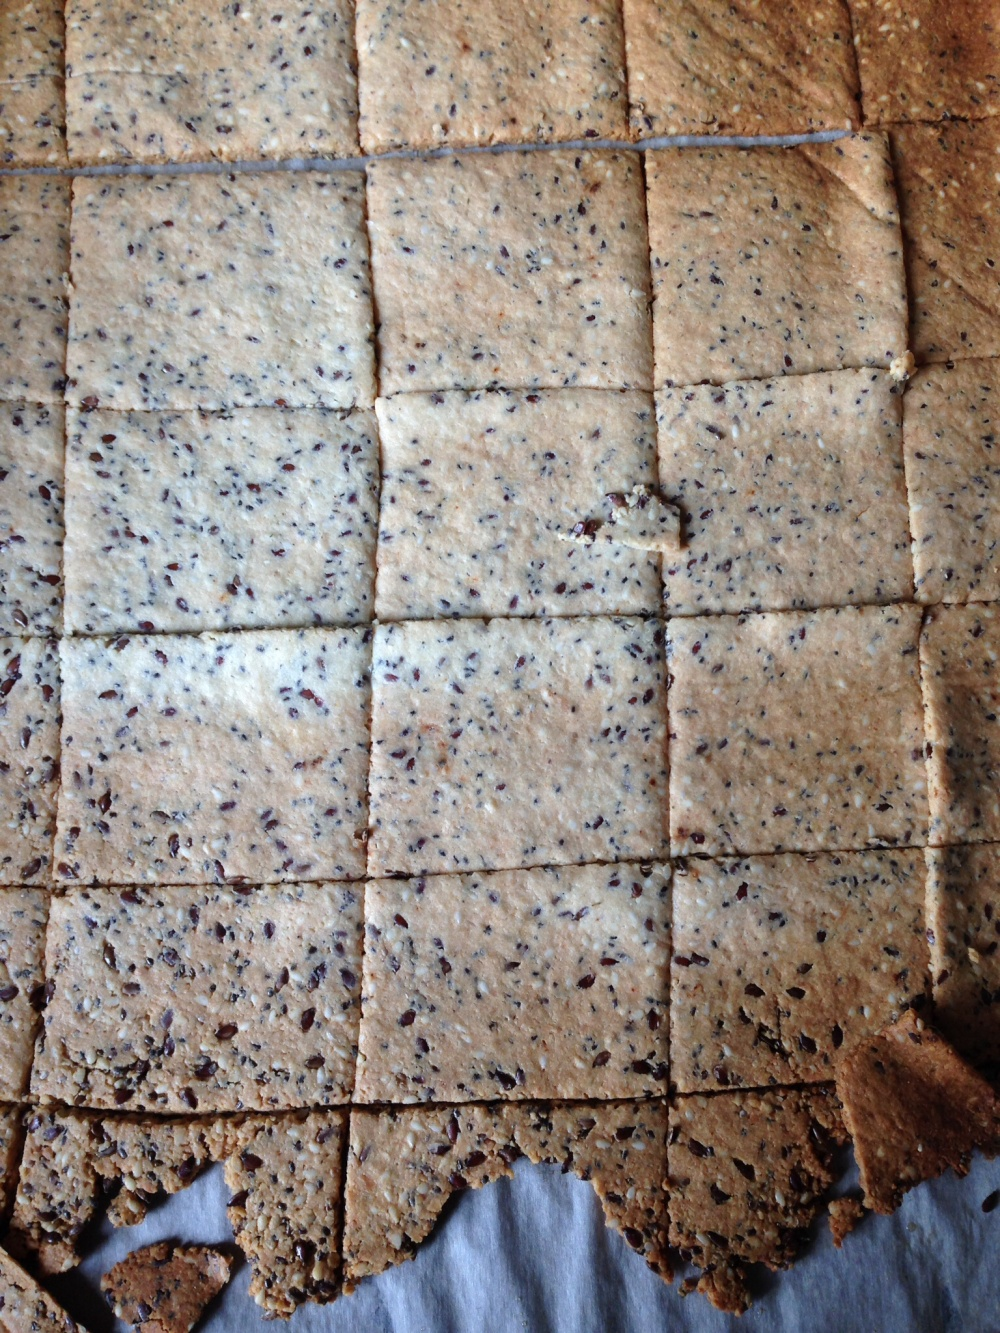 Grain Free, almond, Flax, Chia. Seed crackers